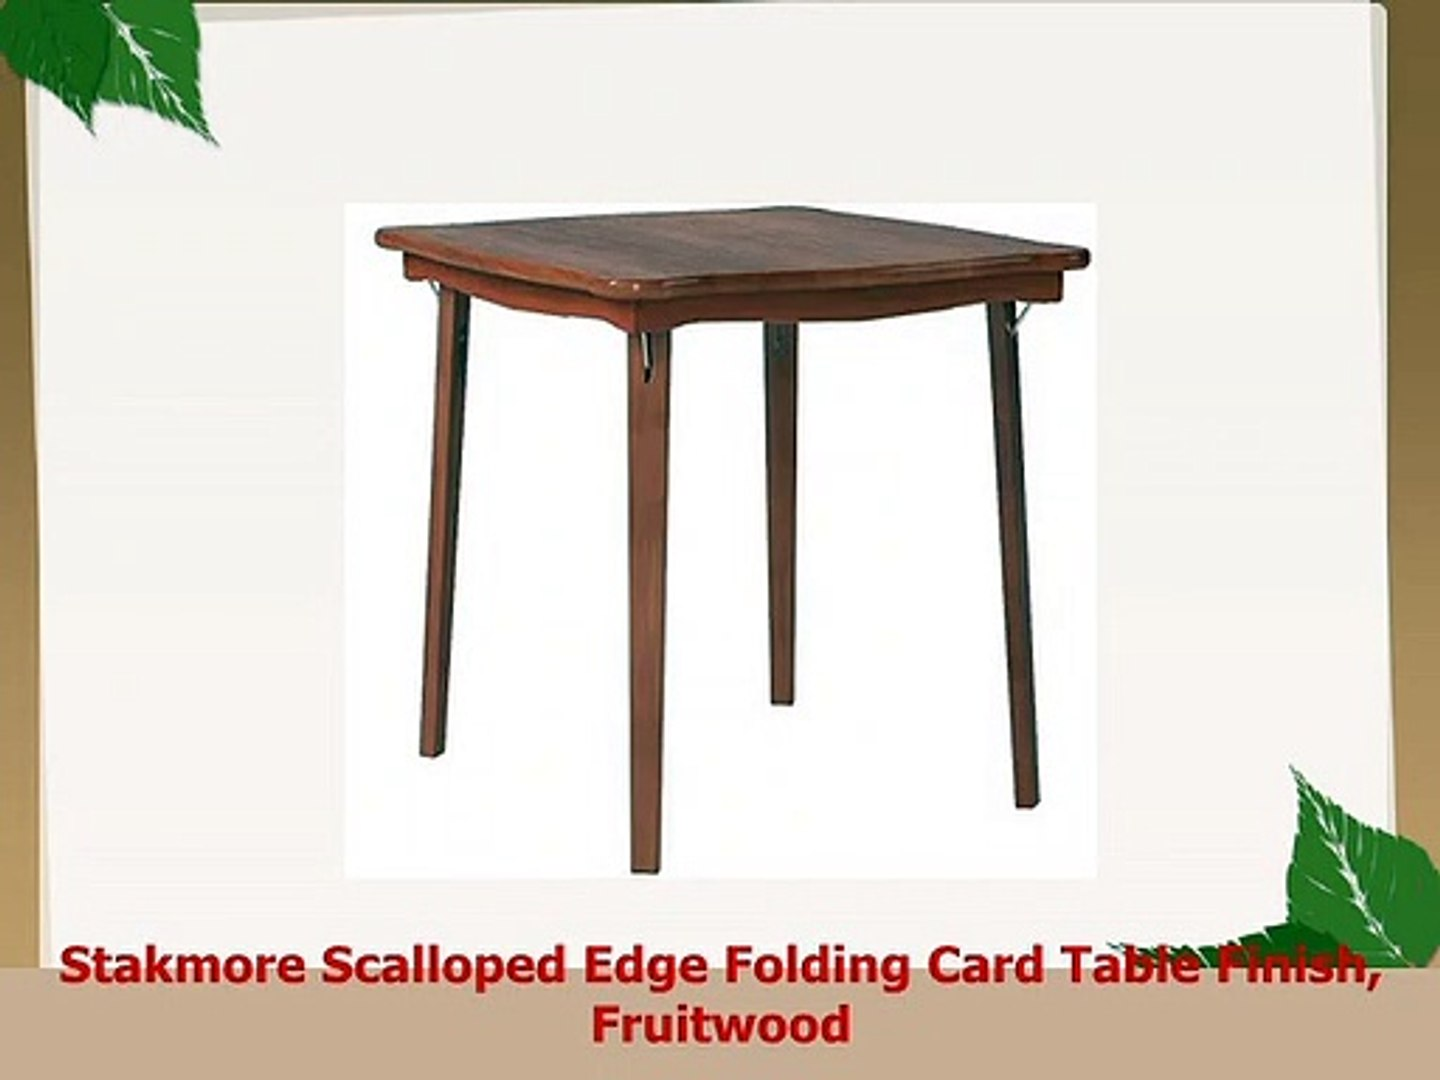 Stakmore Scalloped Edge Folding Card Table Finish Fruitwood